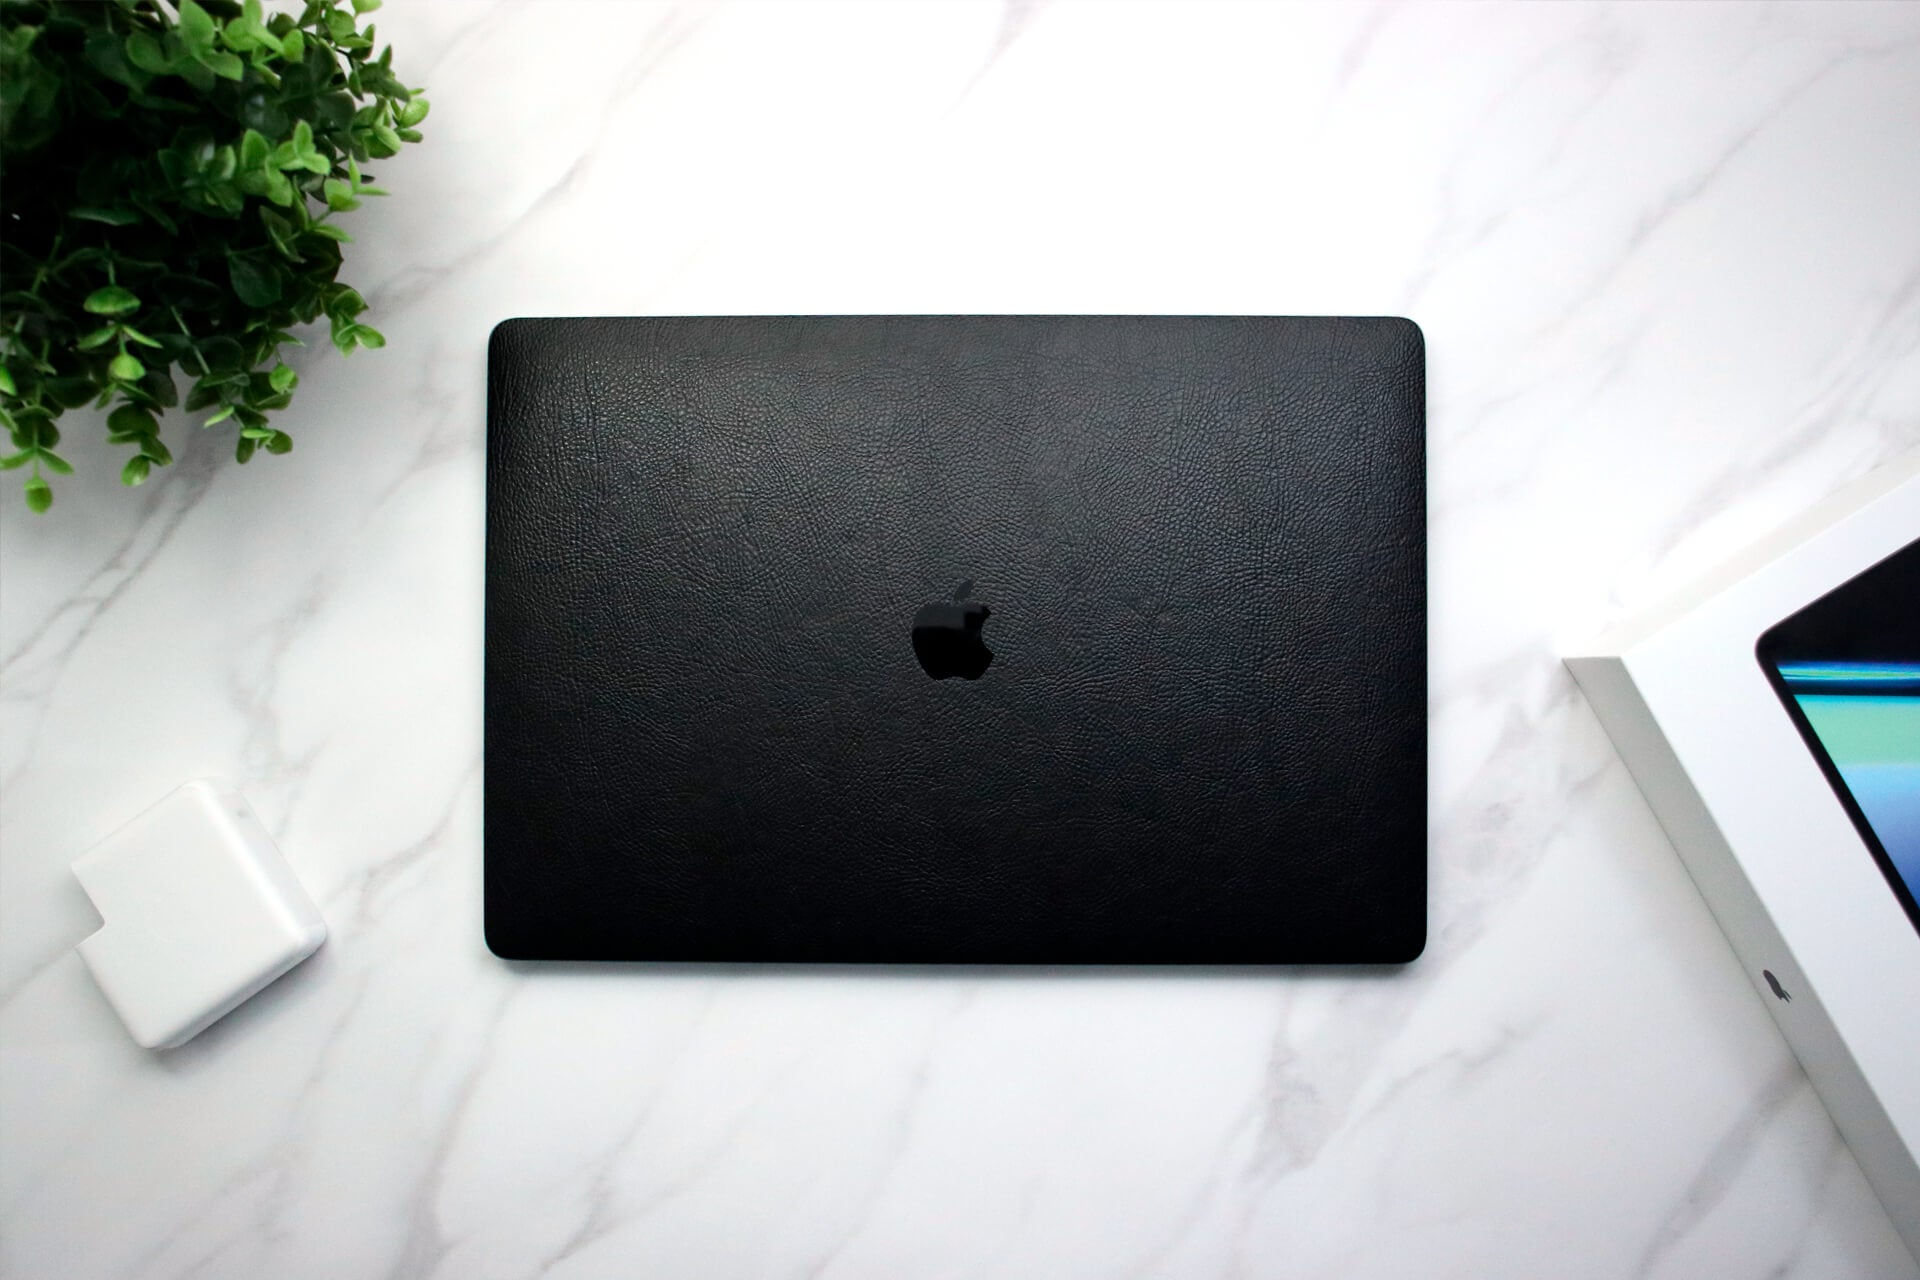 MacBook Pro 16-inch Black Leather Skins